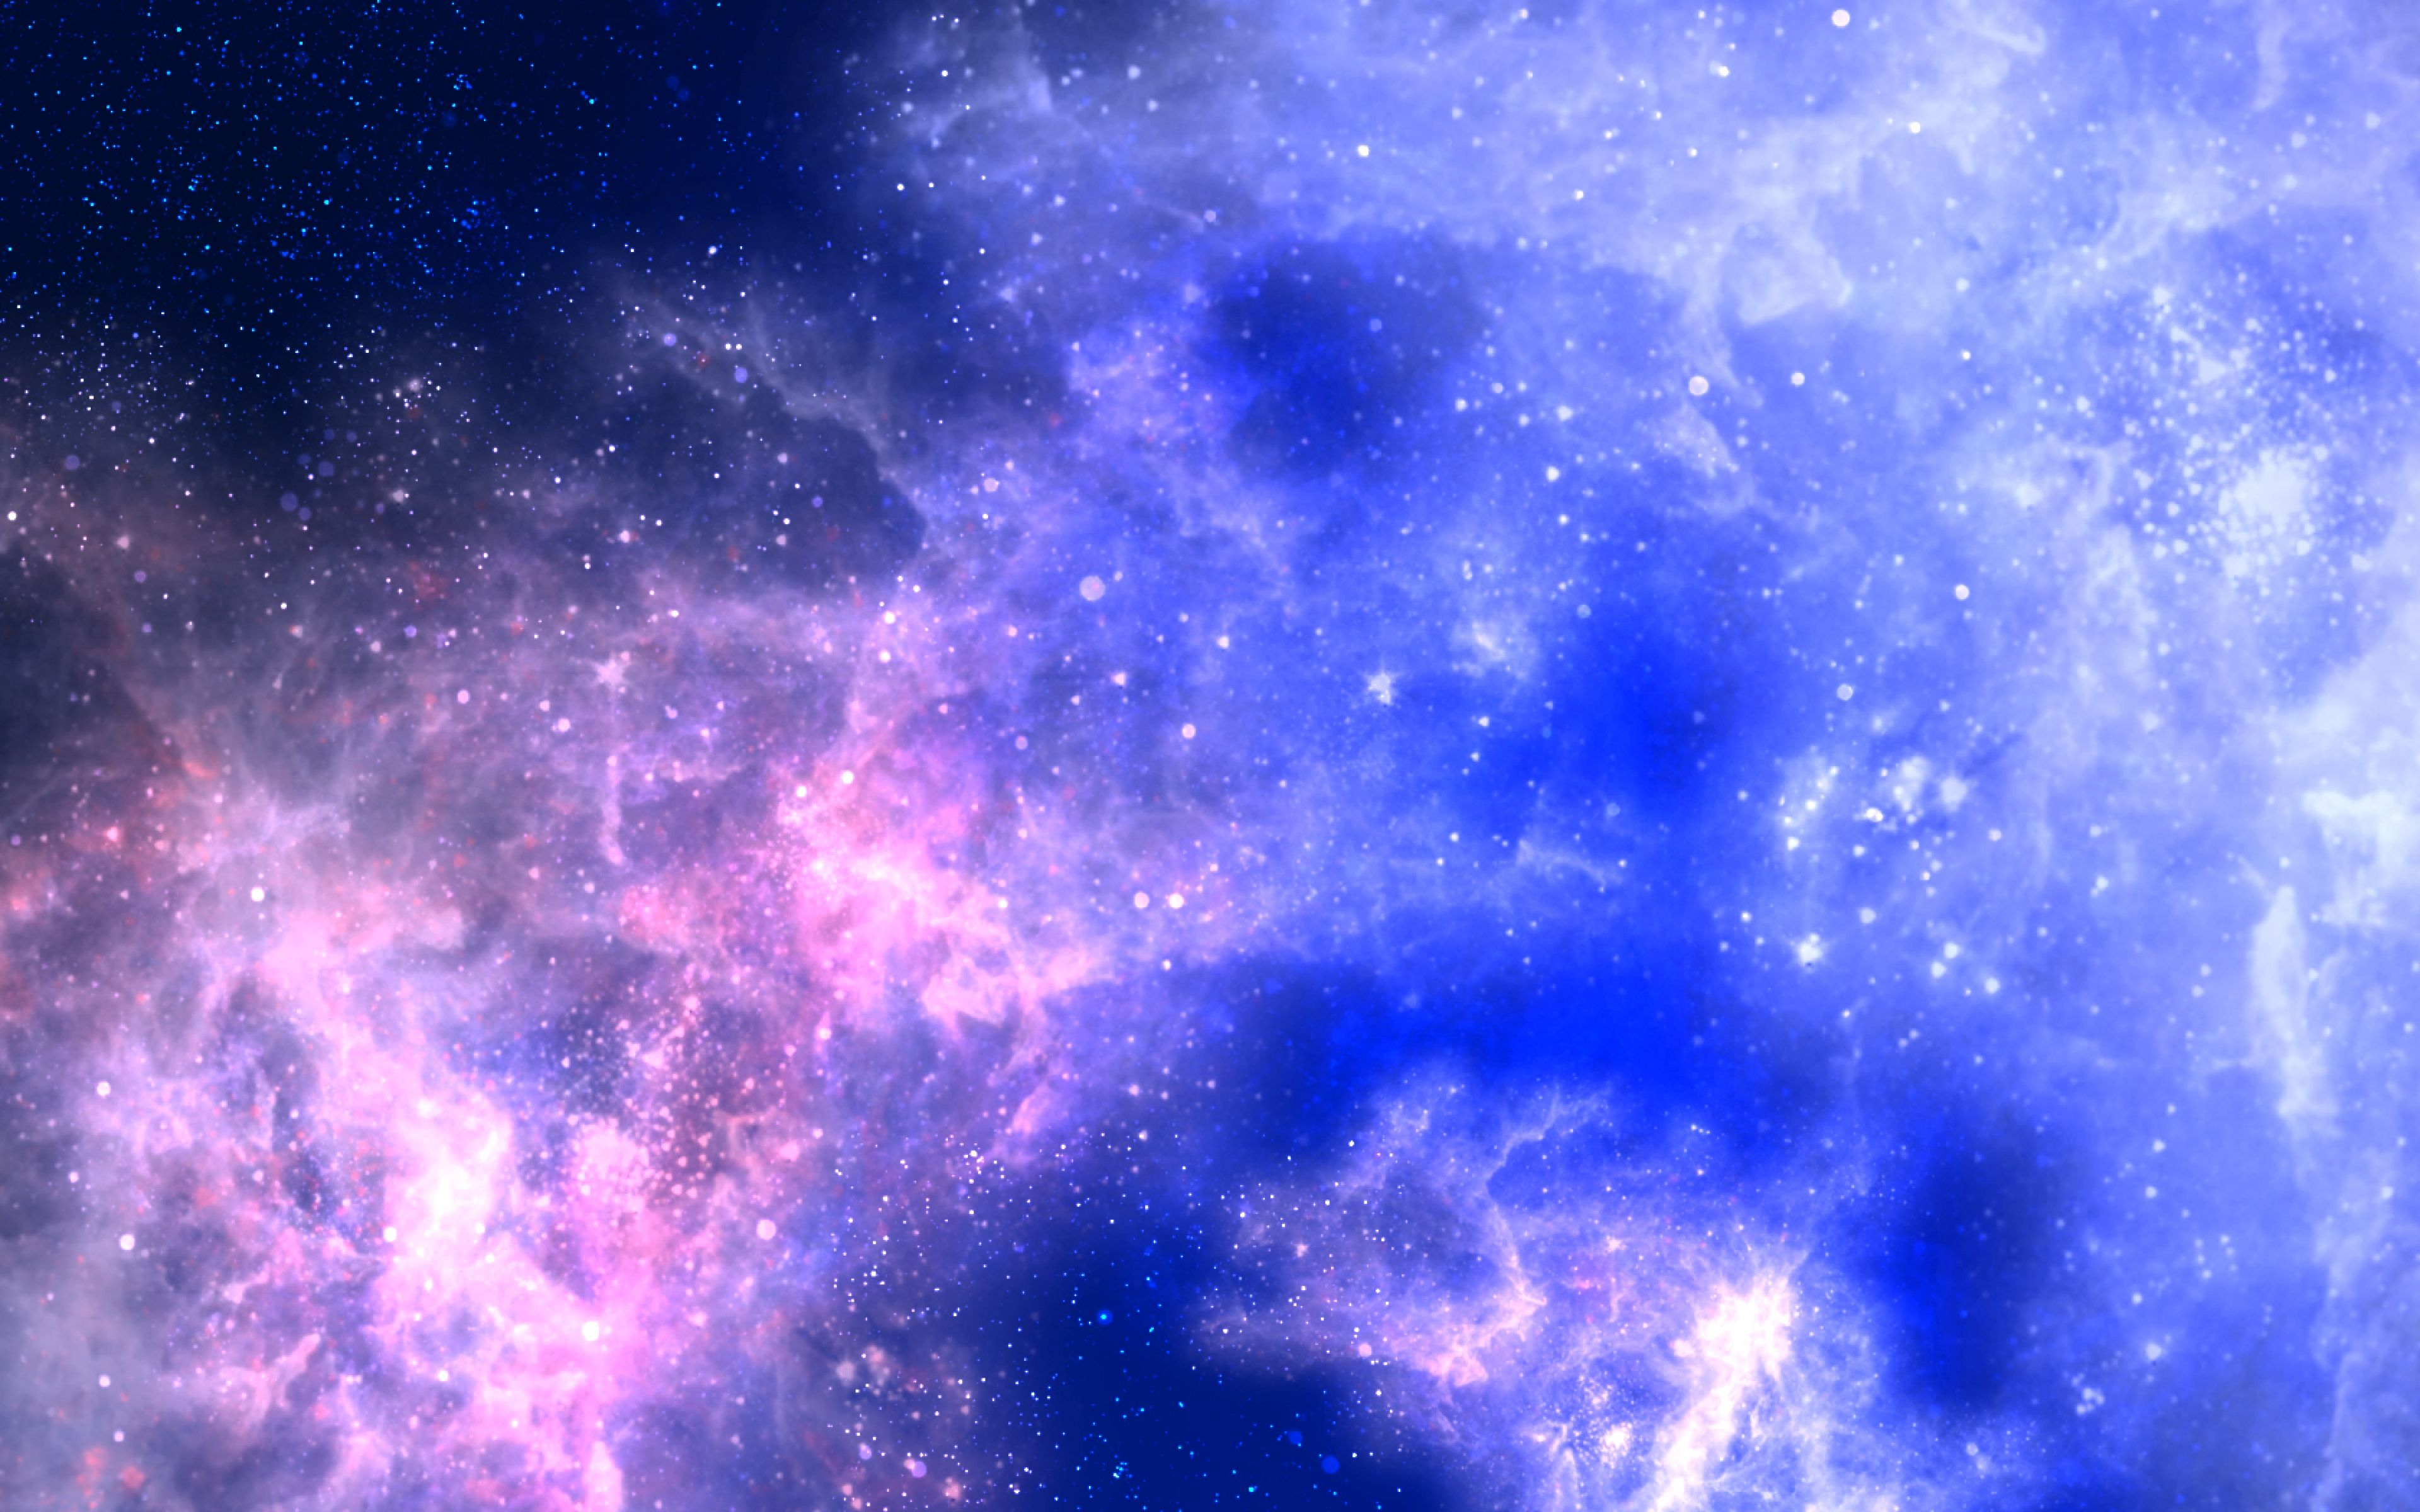 Galaxy HD Background wallpaper Wallpaper | sketchpad inspiration ...